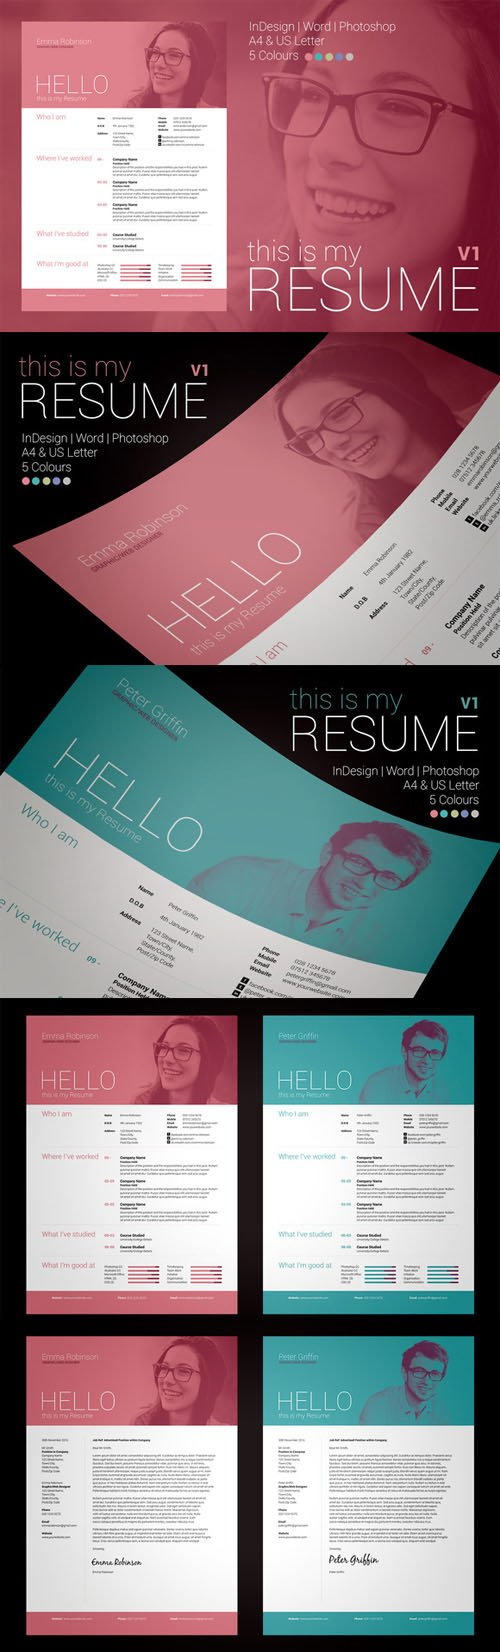 My Resume V1 - Creativemarket 28972